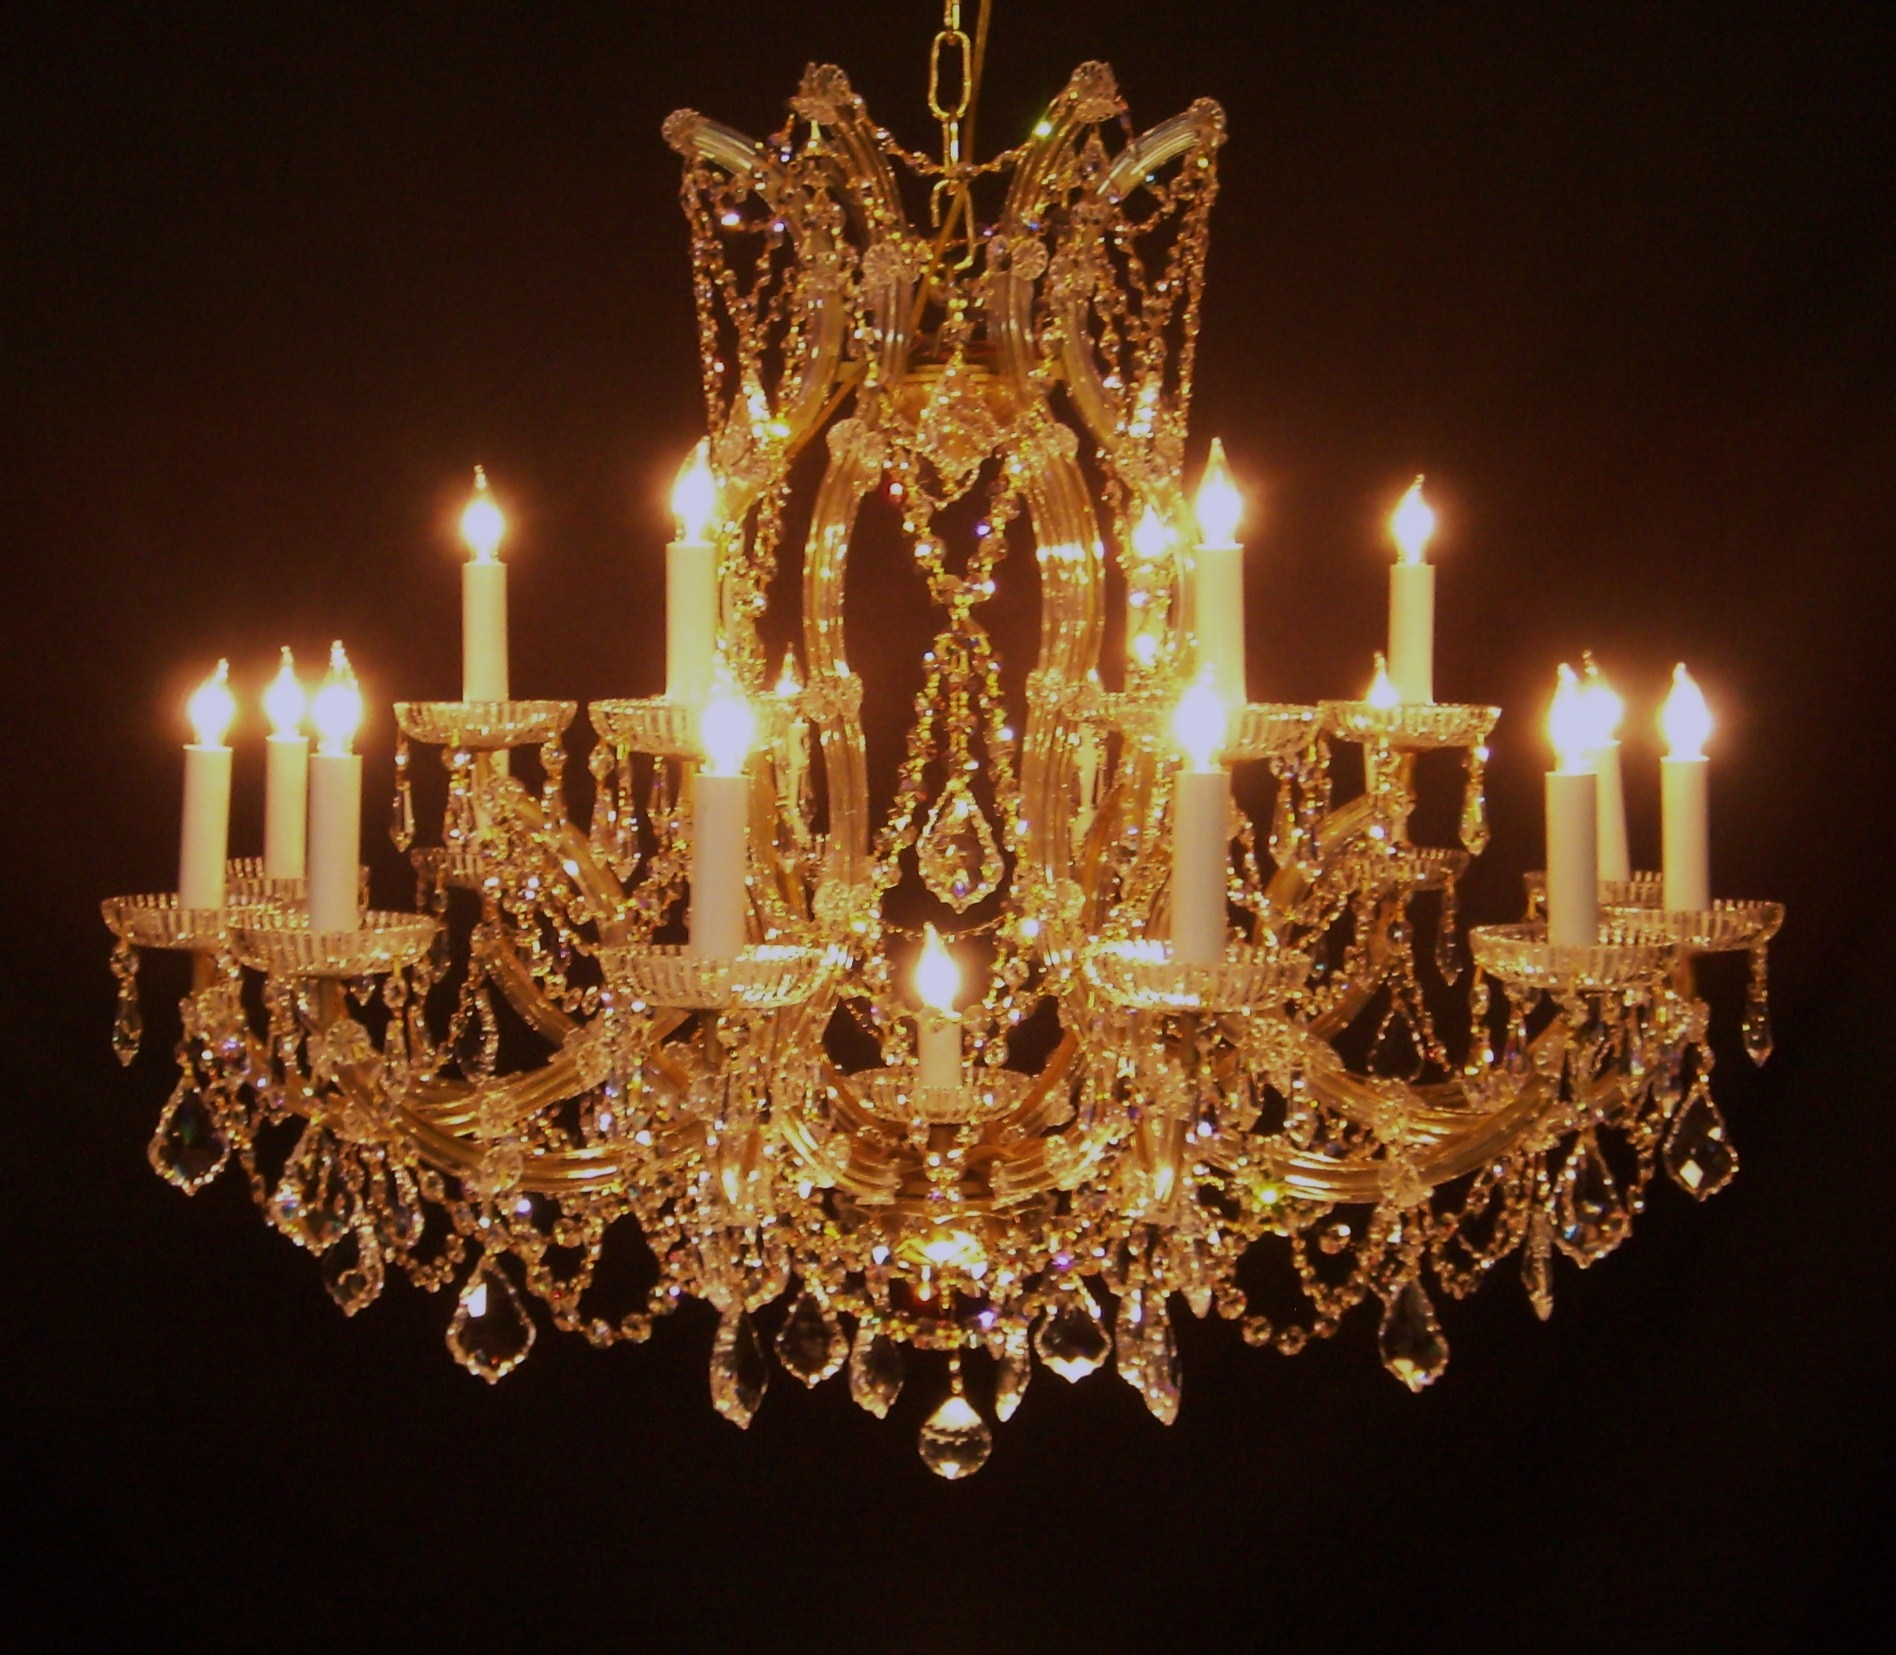 Italian Chandelier Styles Interior Lighting Inspiration Home Designs Intended For Italian Chandeliers Style (Image 6 of 15)